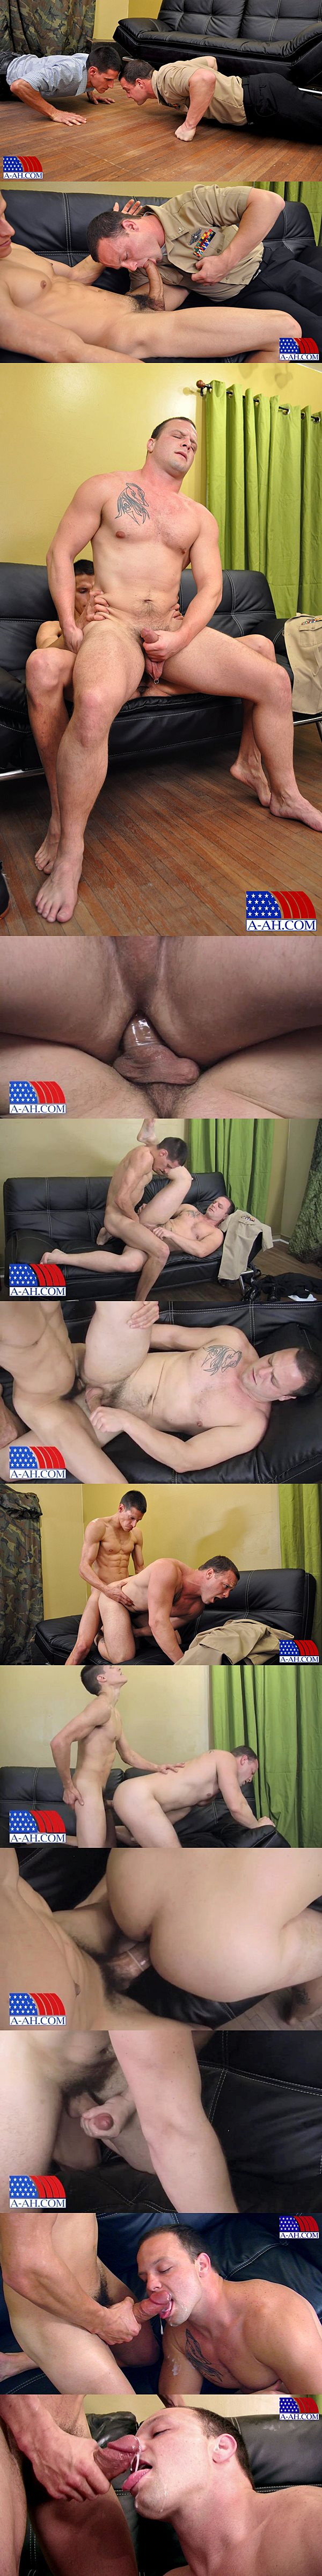 Big-dicked Eddy fucks macho hunk Logan's tight virgin hole in Petty Officer Eddy Fucks Navy Corpsman Logan at All-americanheroes 02